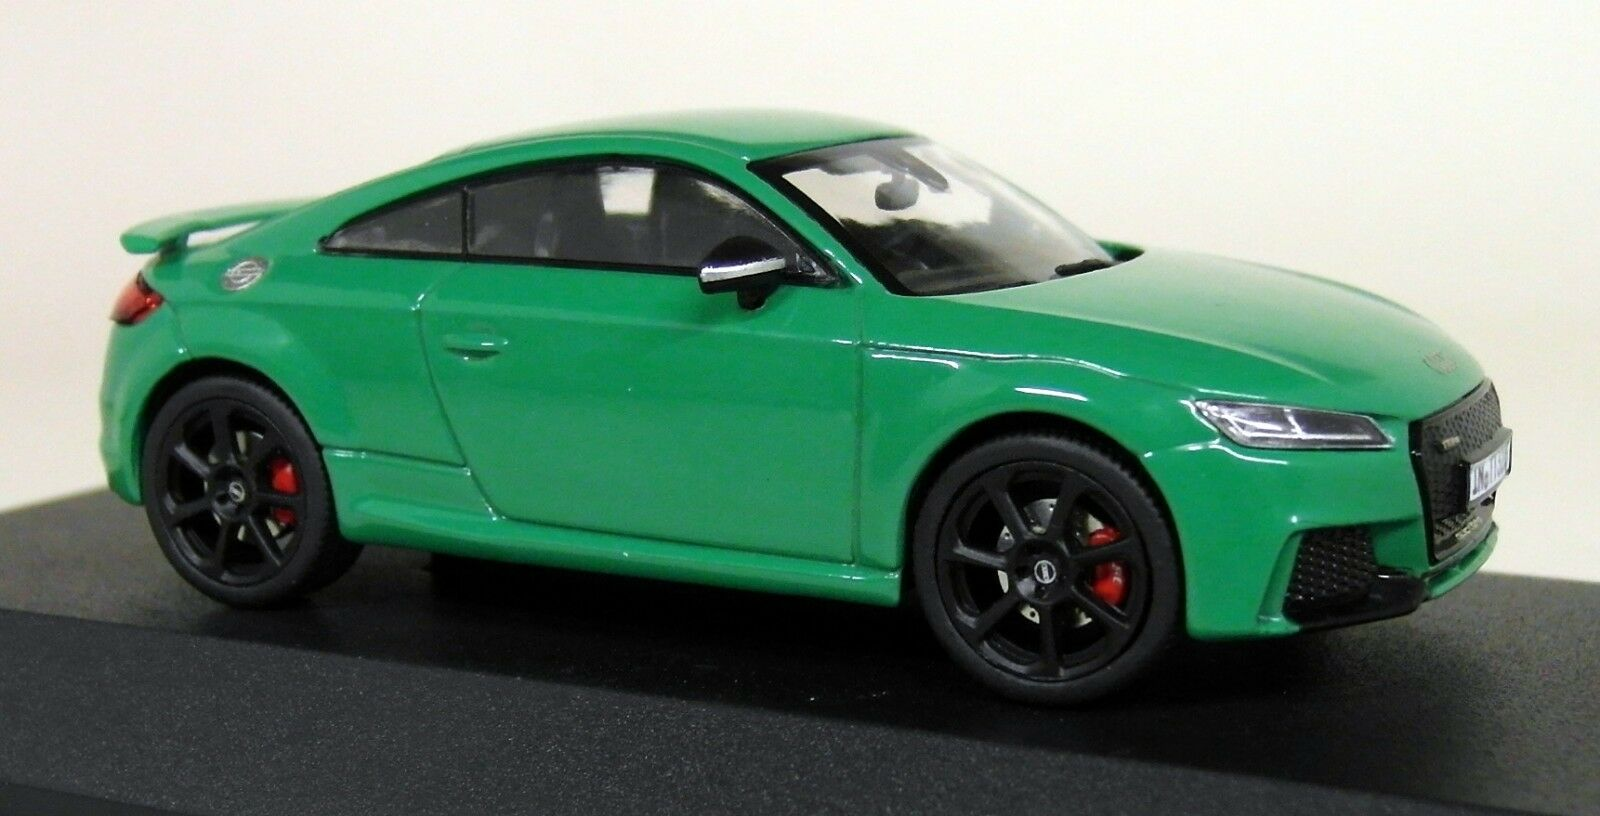 IScale 1 43 43 43 Scale -  Audi TT RS Coupe Bright Green Diecast Model Car 1e788a